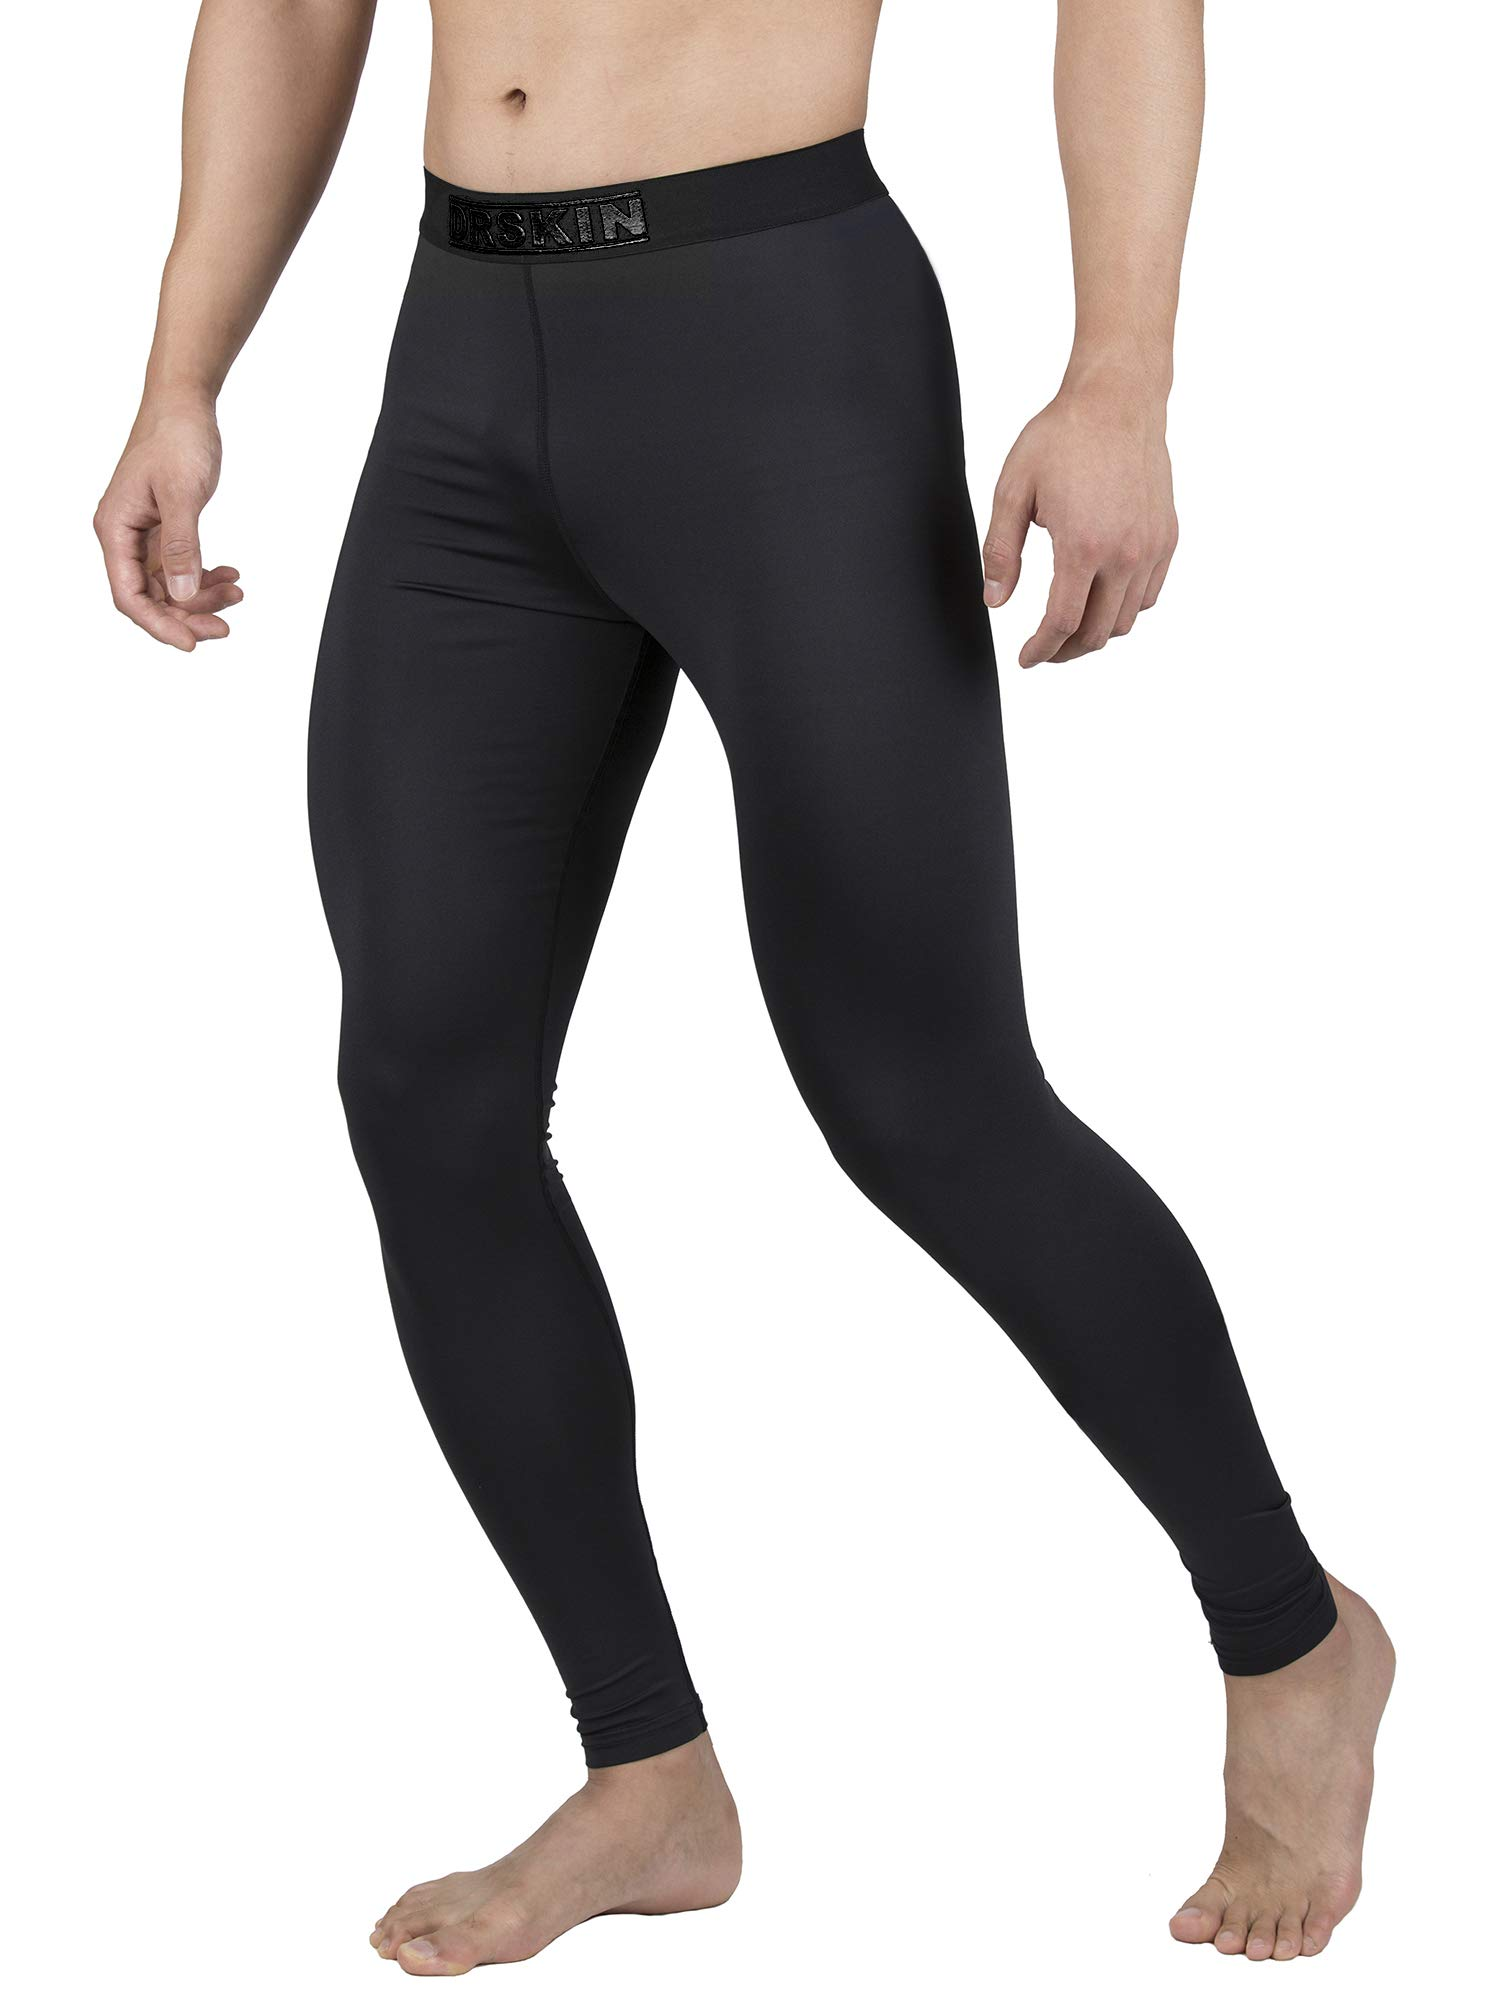 DRSKIN 1~3 Pack Men's Compression Dry Cool Sports Tights Pants Baselayer Running Leggings Yoga (Packs of 1, 2, or 3 Deals) (Silicon BB01, XL) by DRSKIN